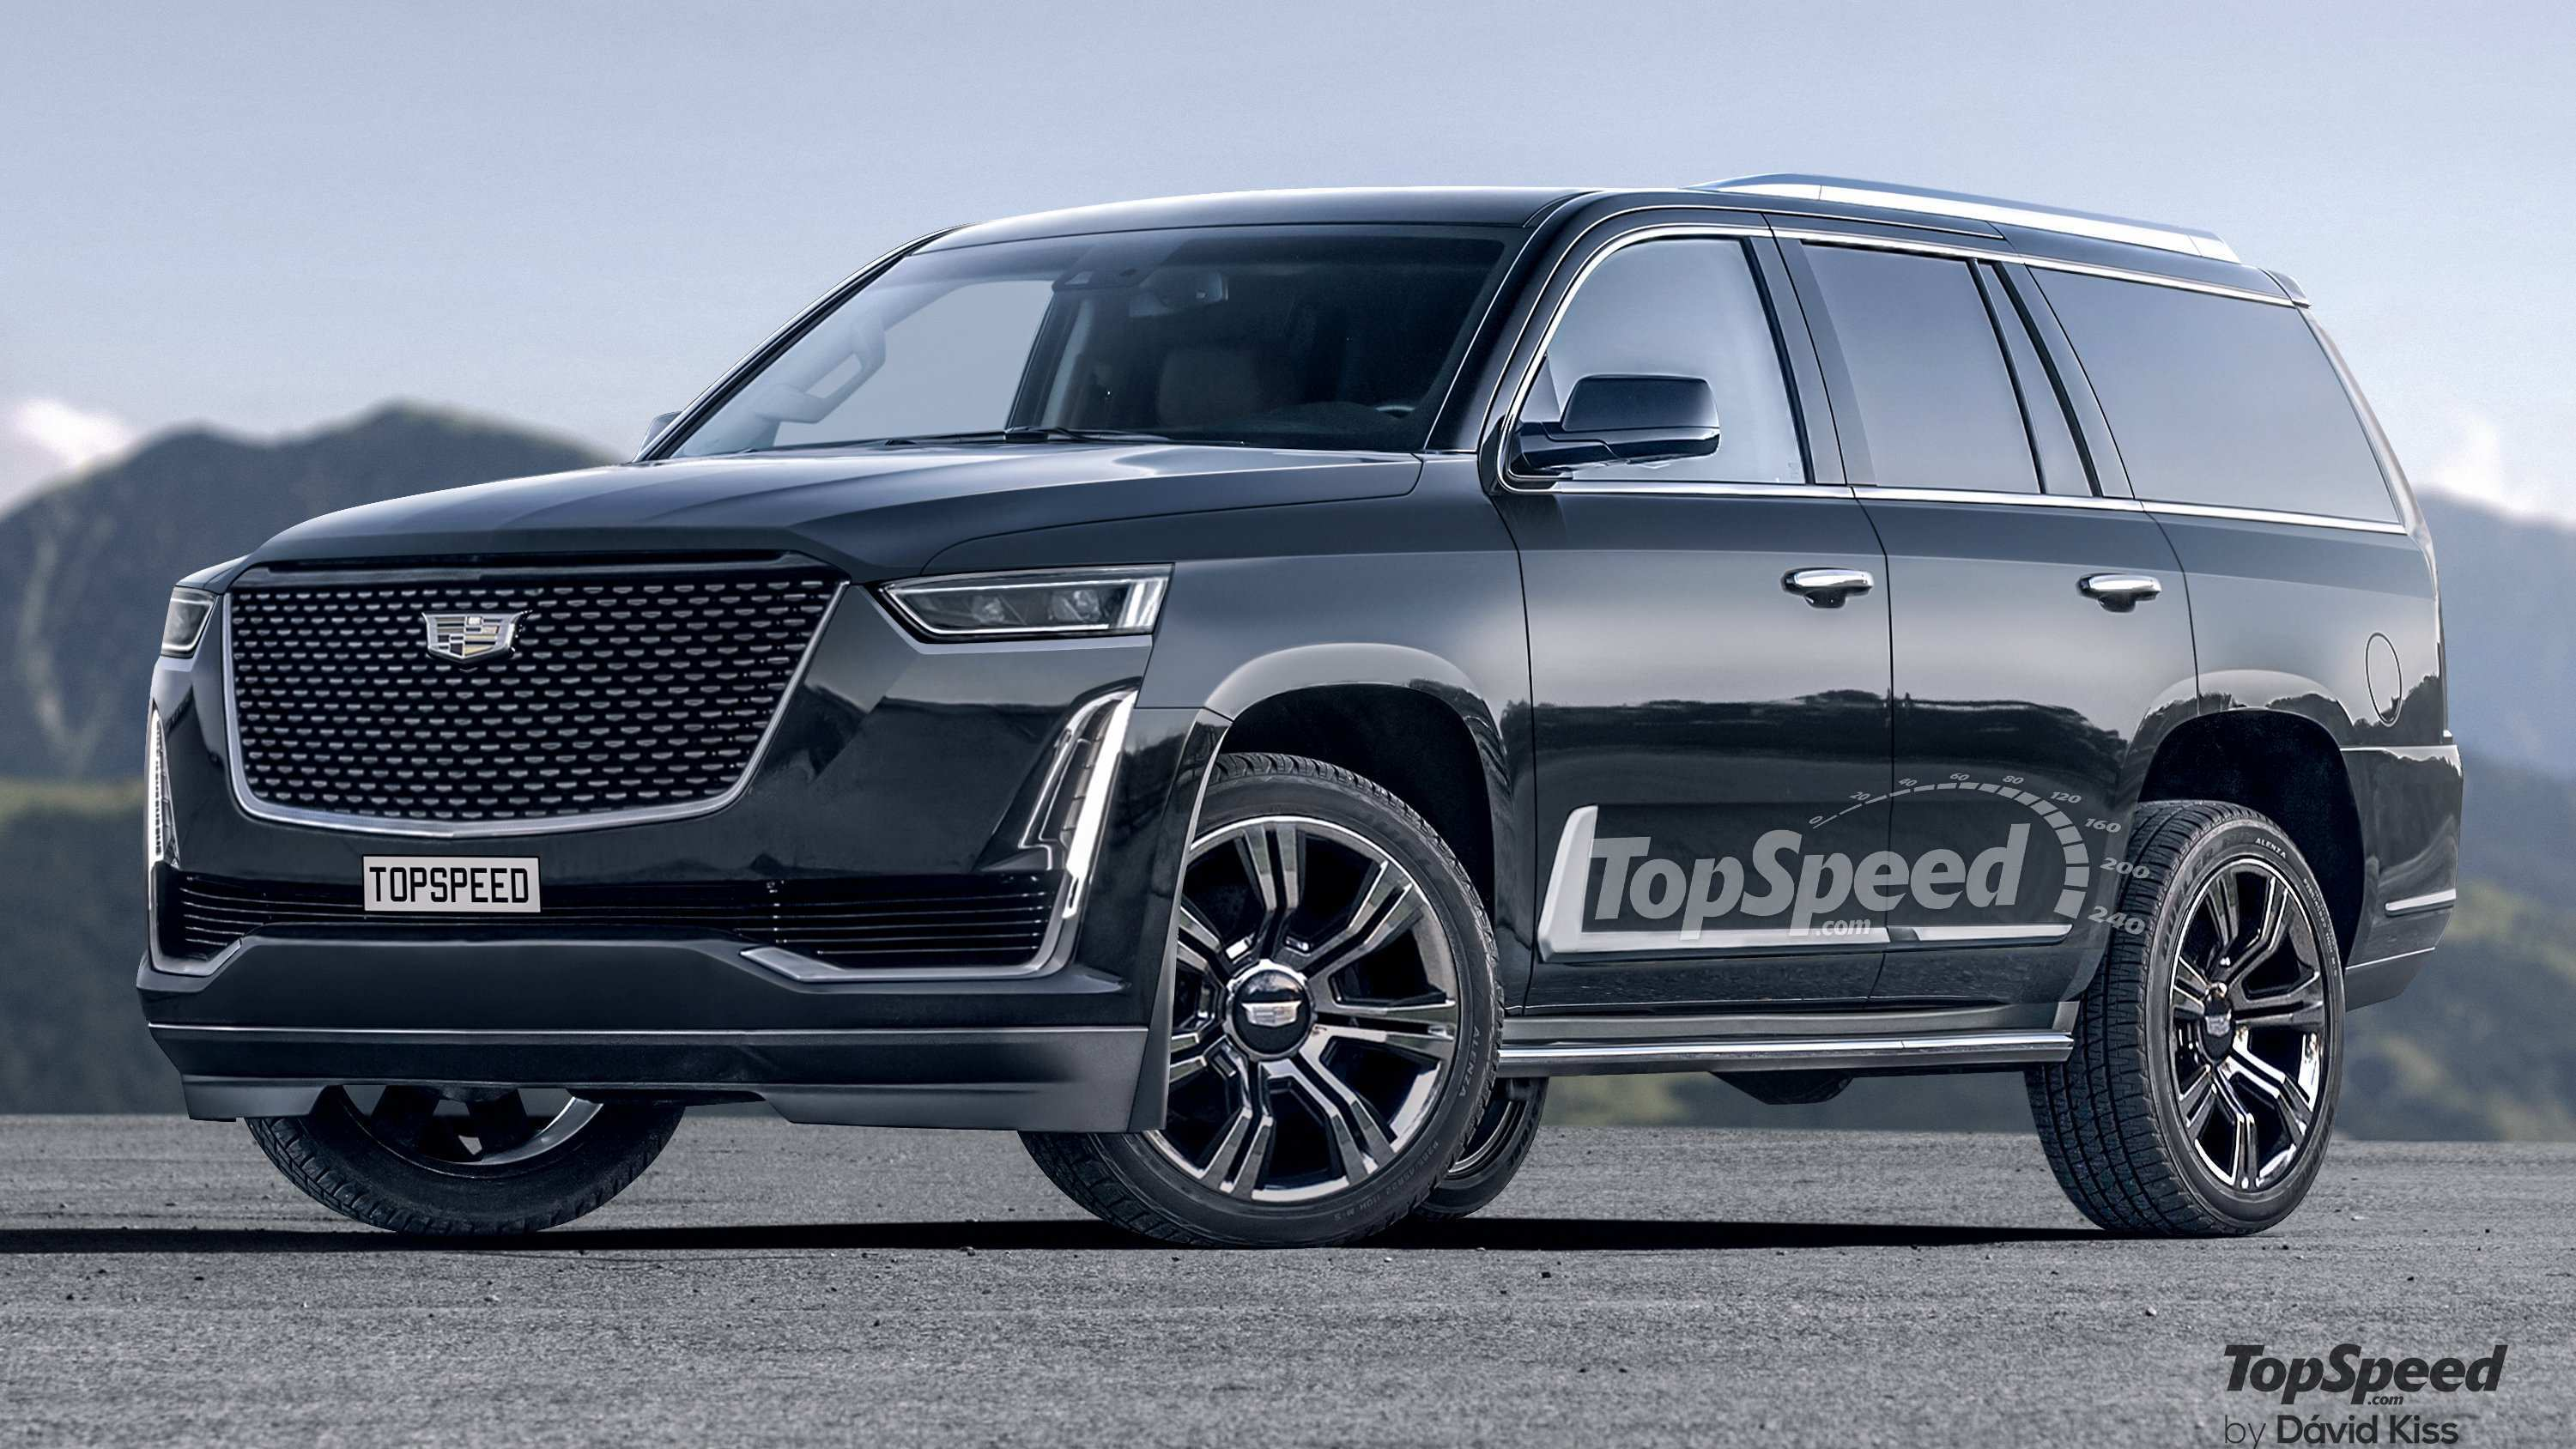 28 A Release Date For 2020 Cadillac Escalade Concept And Review